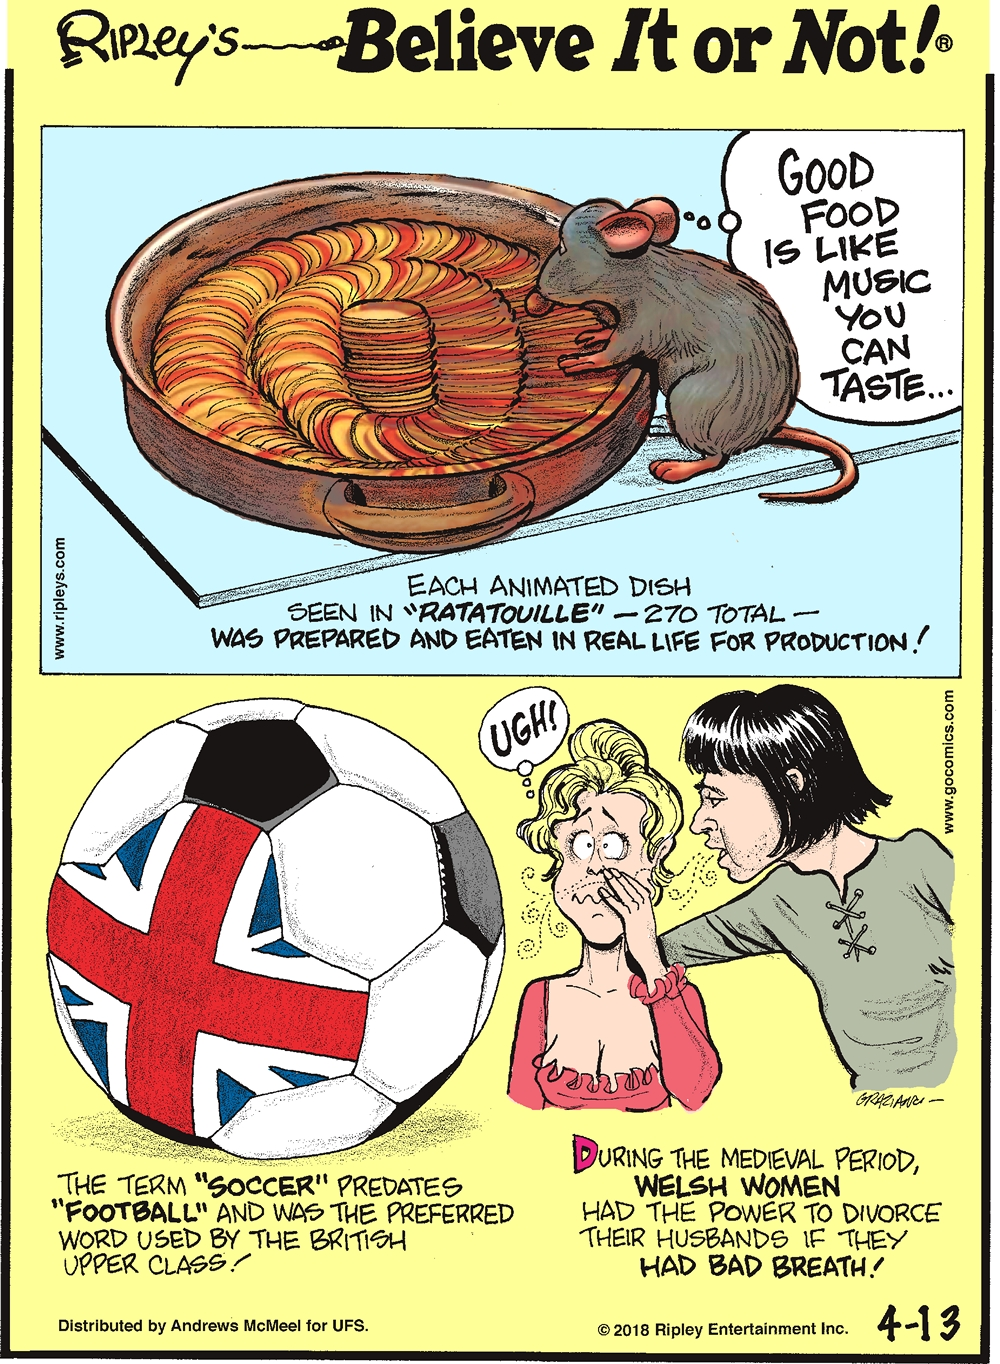 """Each animated dish seen in """"Ratatouille"""" - 270 total - was prepared and eaten in real life for production!-------------------- The term """"soccer"""" predates """"football"""" and was the preferred word used by the British upper class!-------------------- During the medieval period, Welsh women had the power to divorce their husbands if they had bad breath!"""